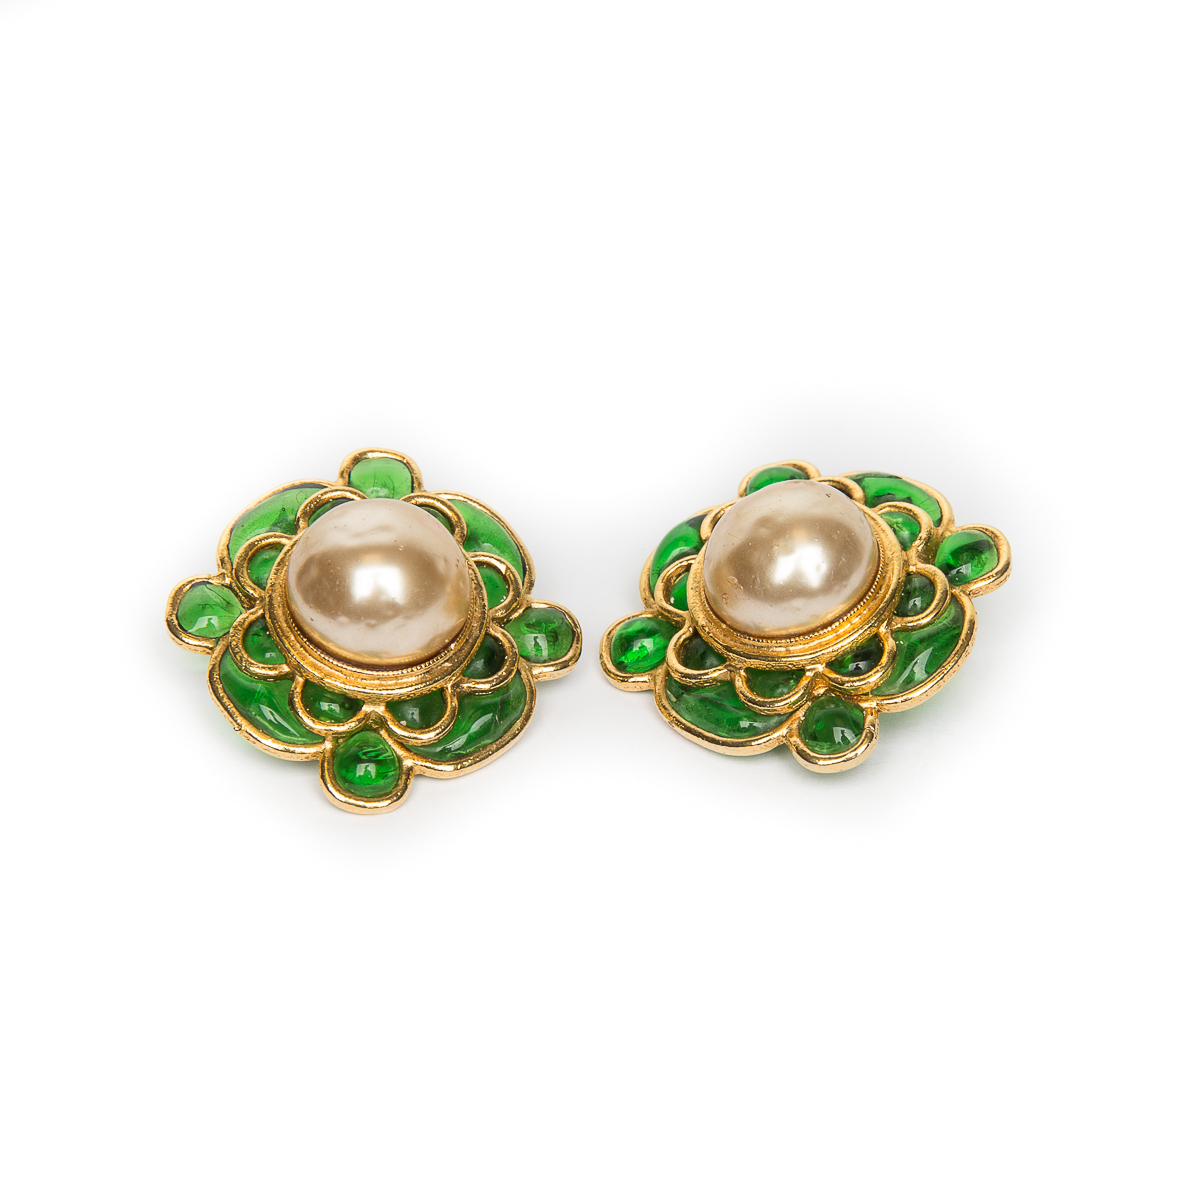 Chanel clip-on earrings with Gripoix glass